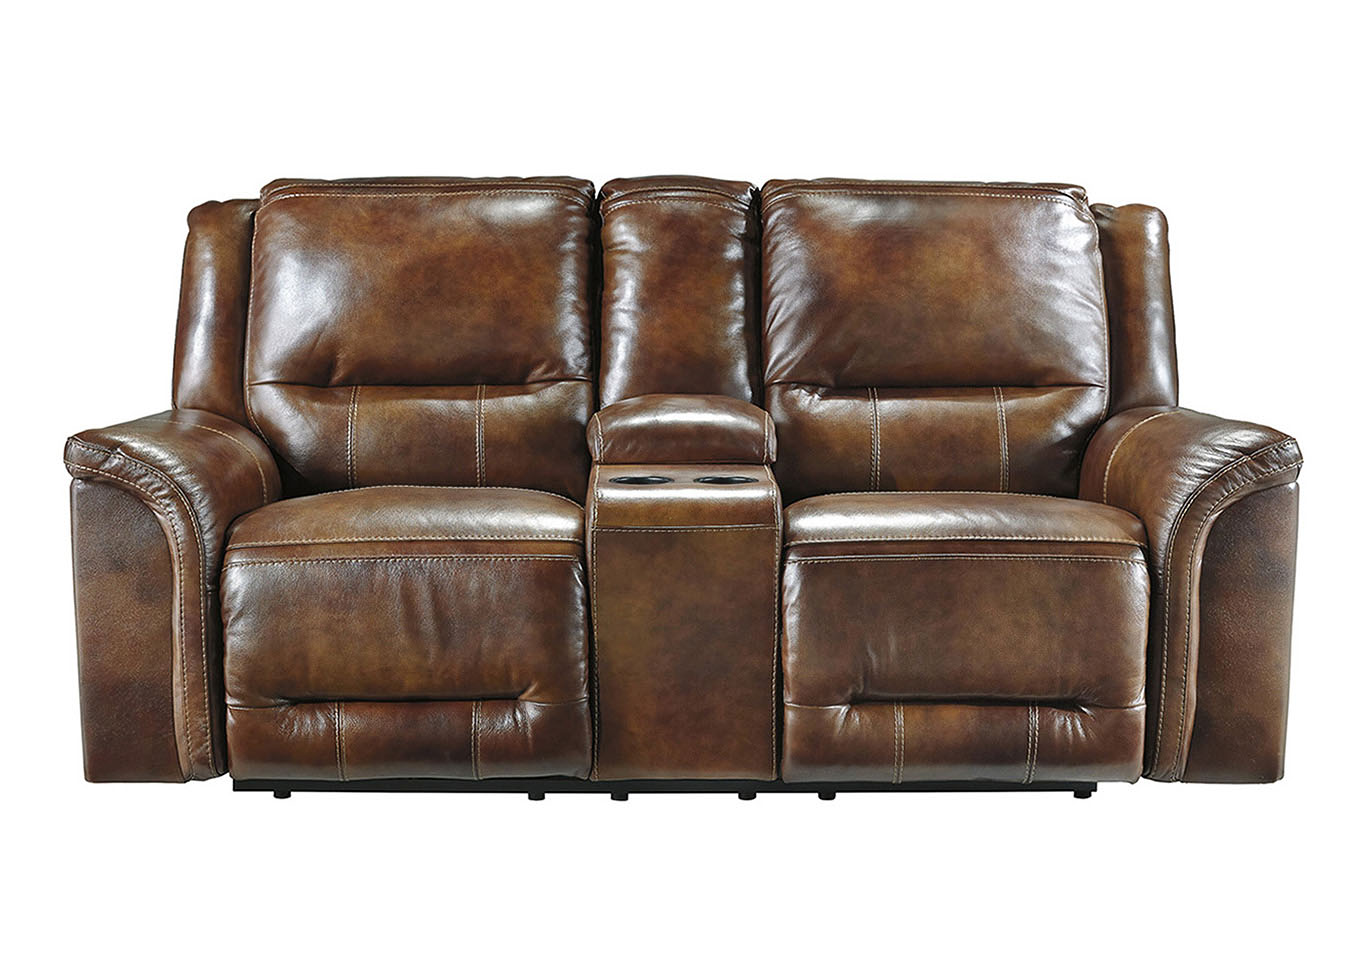 Alabama Furniture Market Jayron Harness Double Reclining Power Loveseat W Console